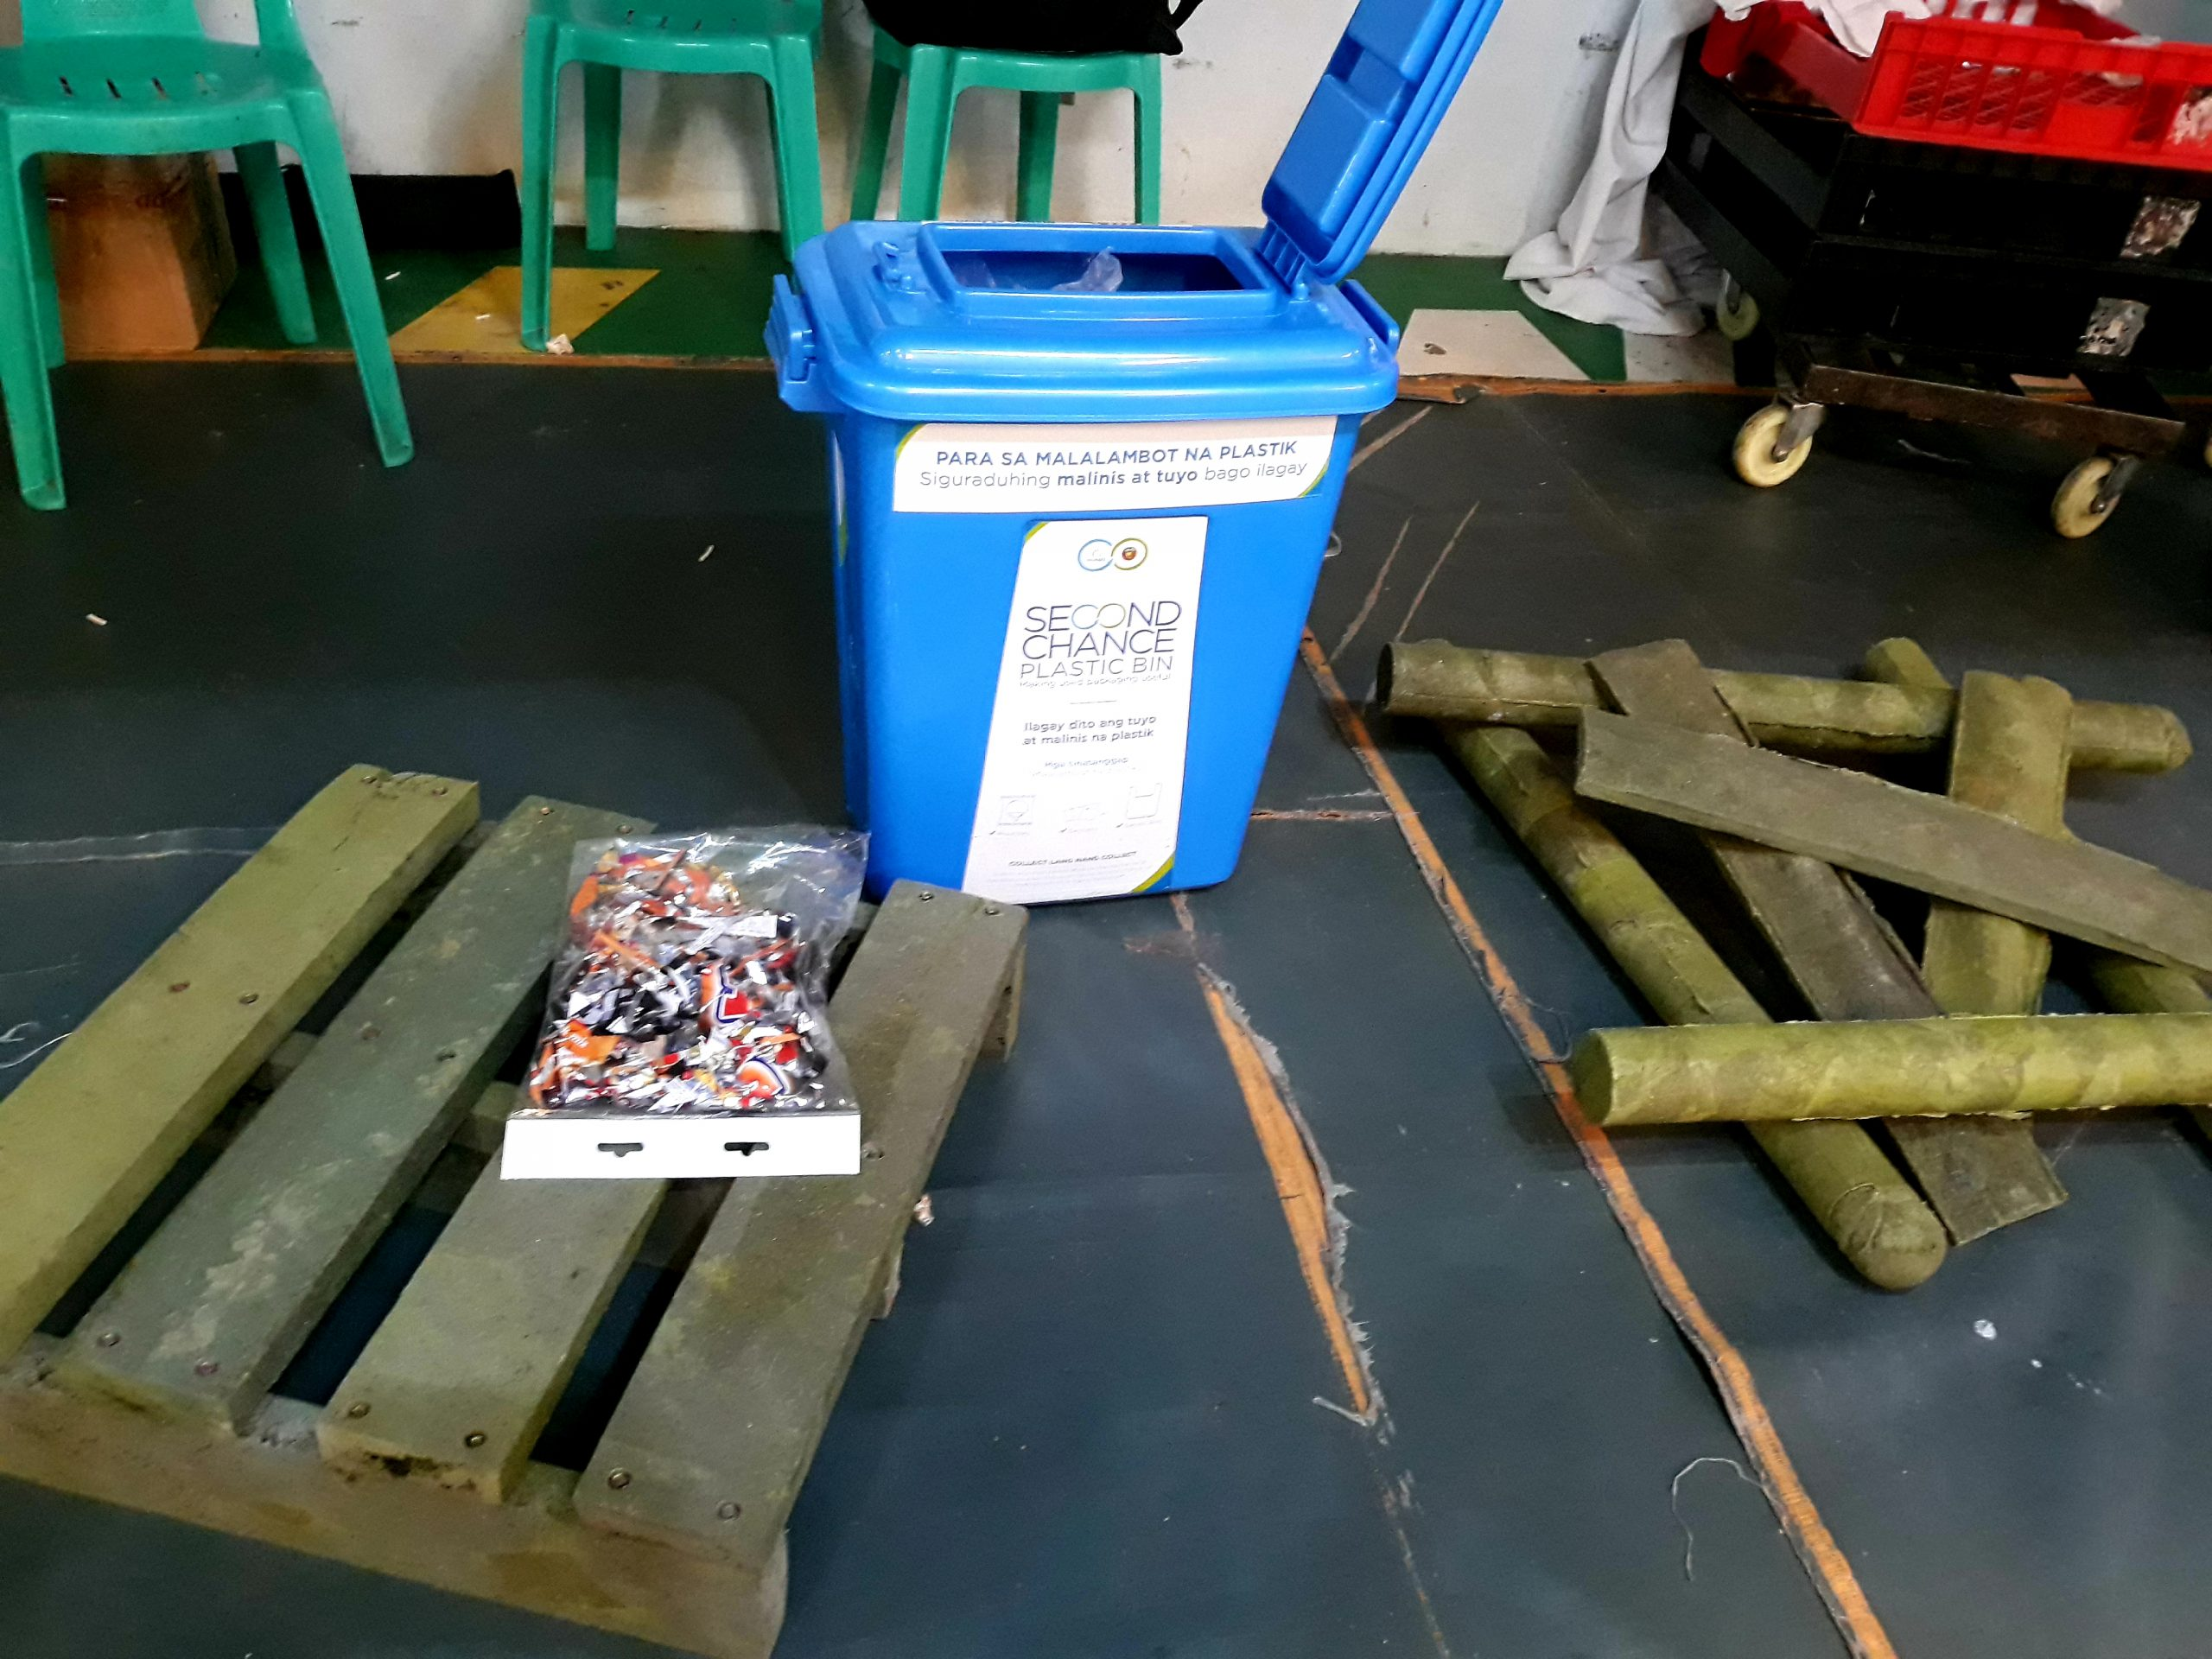 , Why was there single-use plastic at this zero waste event in the Philippines?, The Circular Economy, The Circular Economy